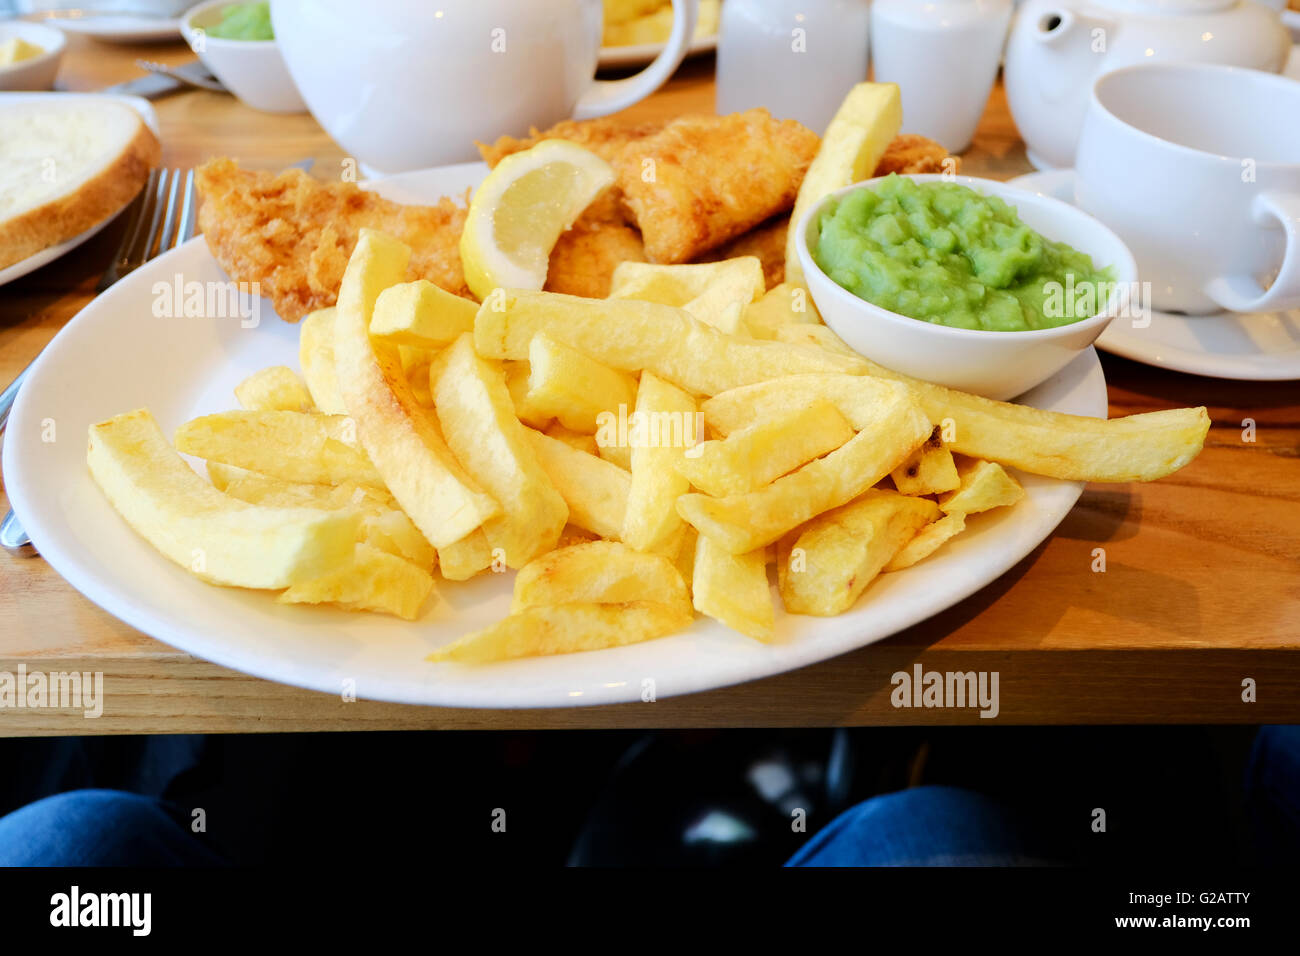 A plate of english fish, chips and mushy peas served on a plate in a restaurant - Stock Image